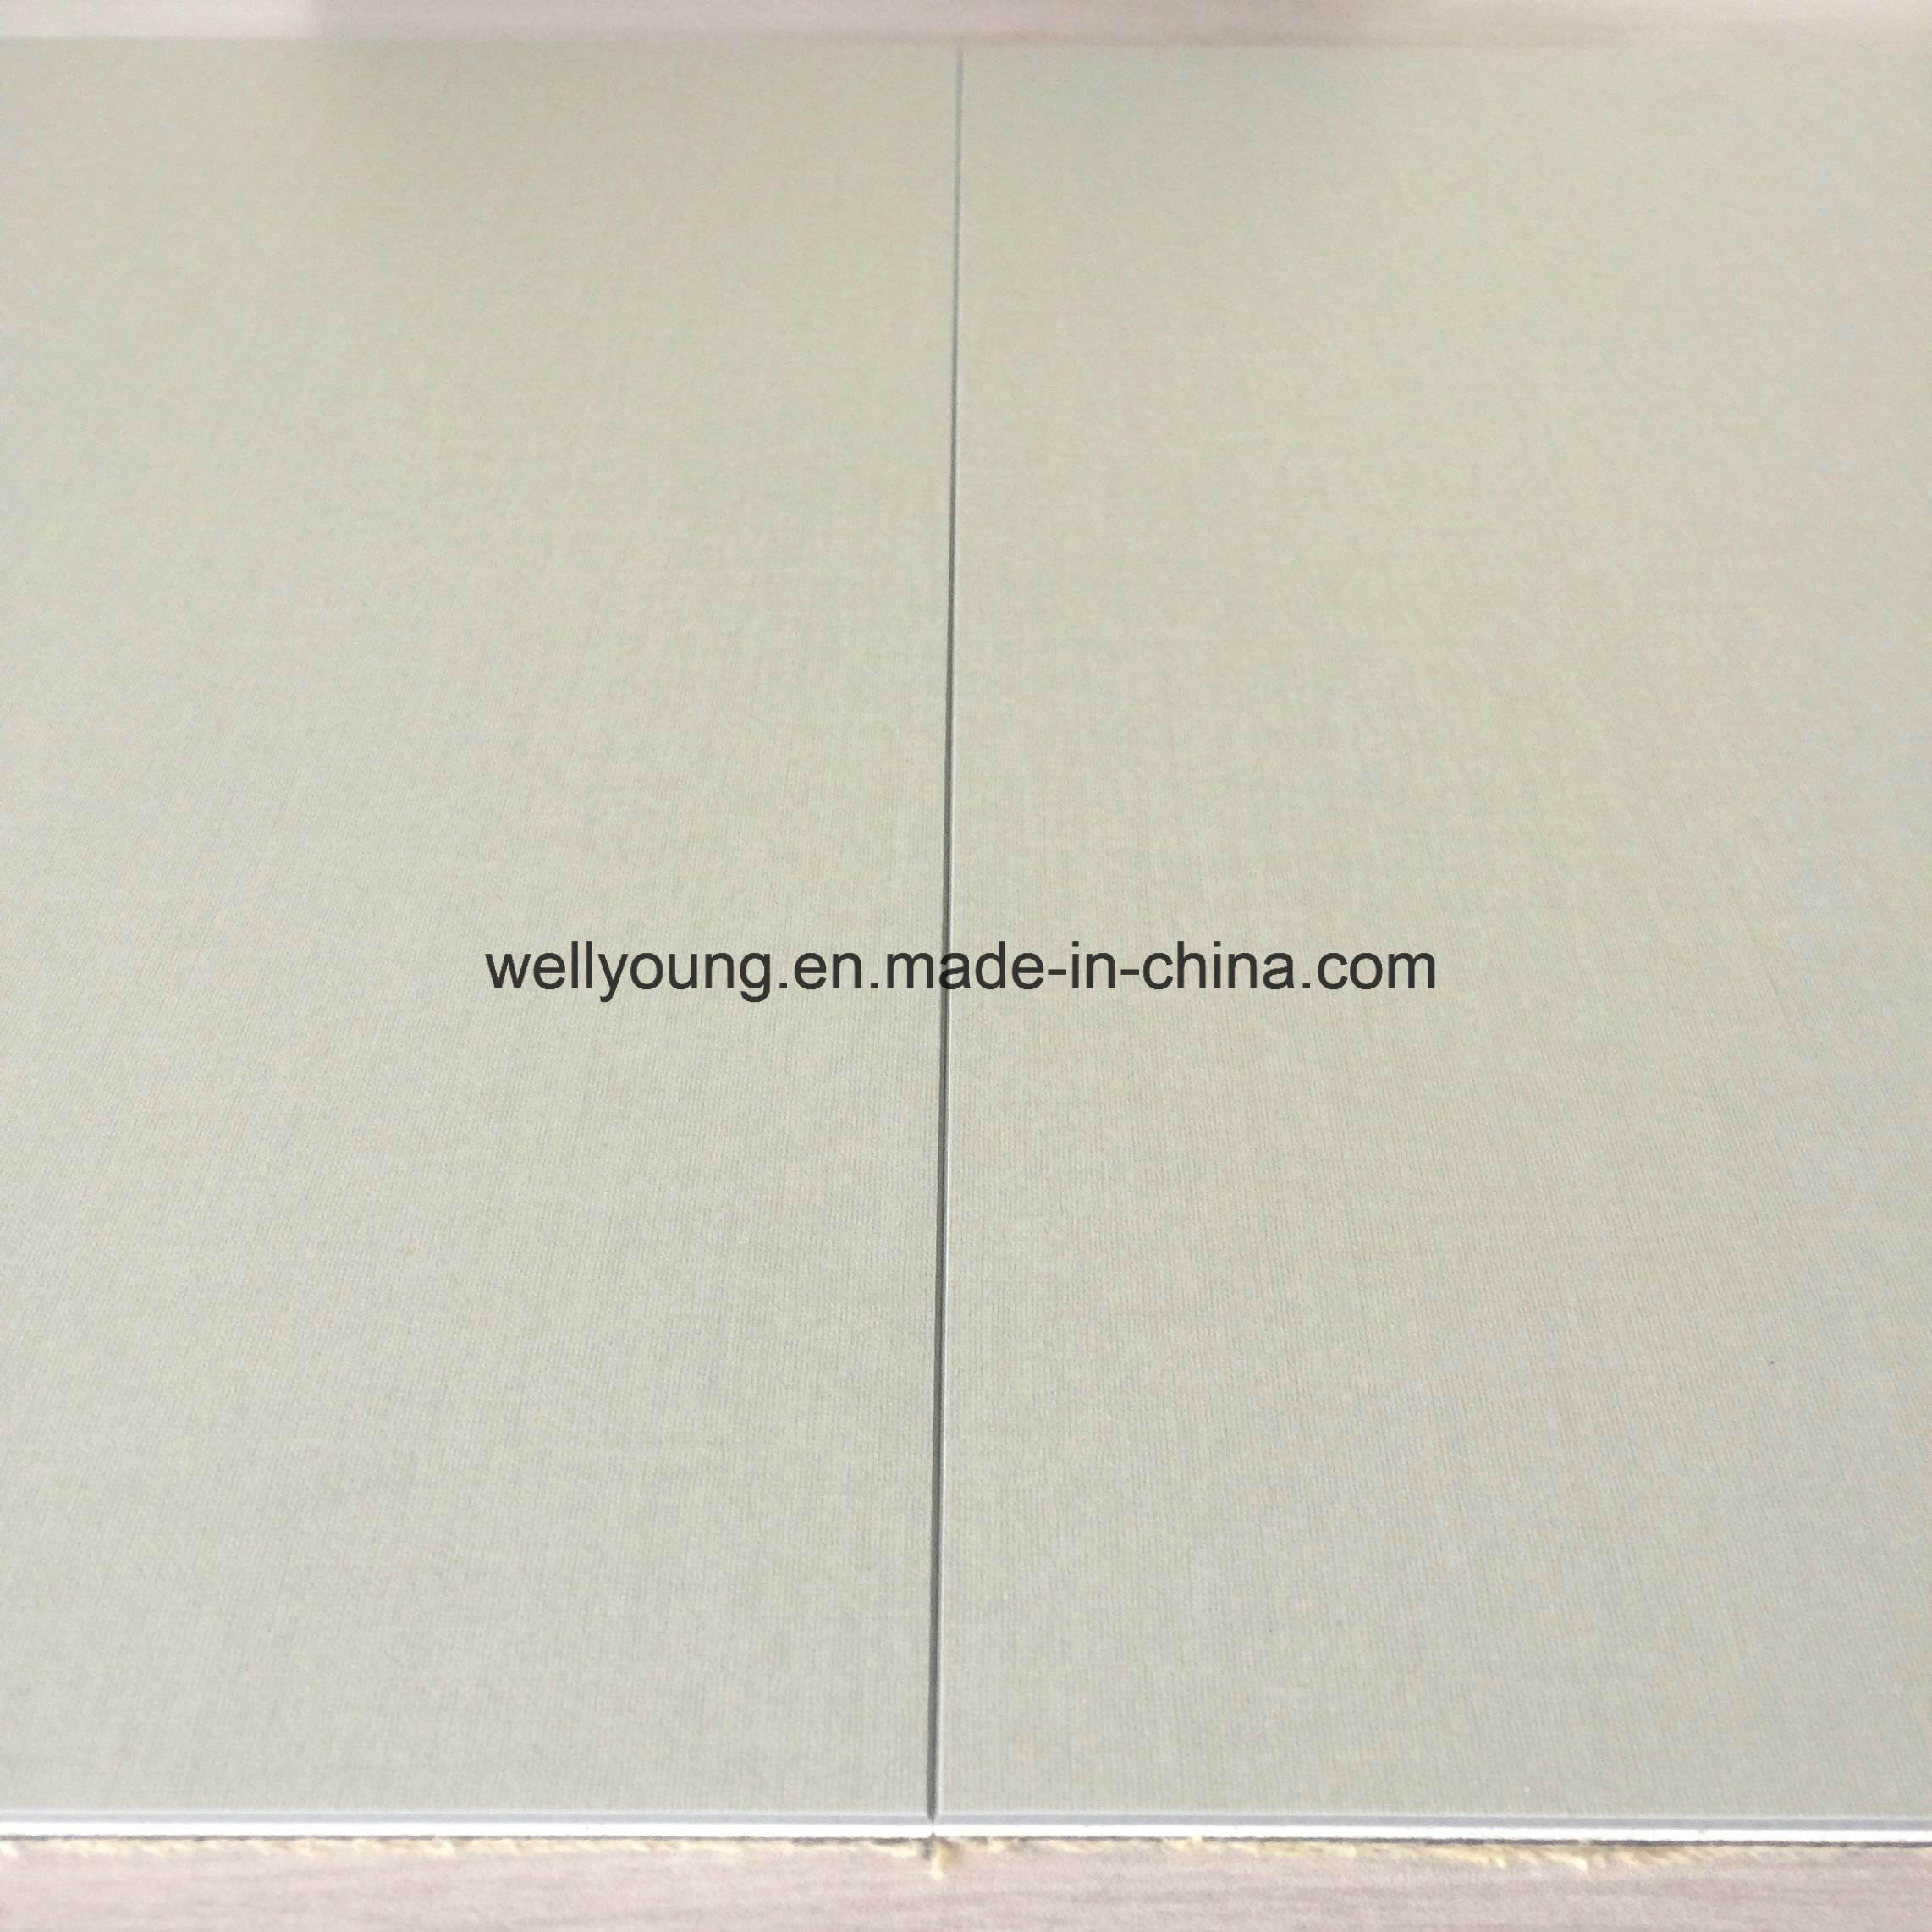 China Best Selling Newest Non-Slip Bathroom Wall Tile Stickers in ...